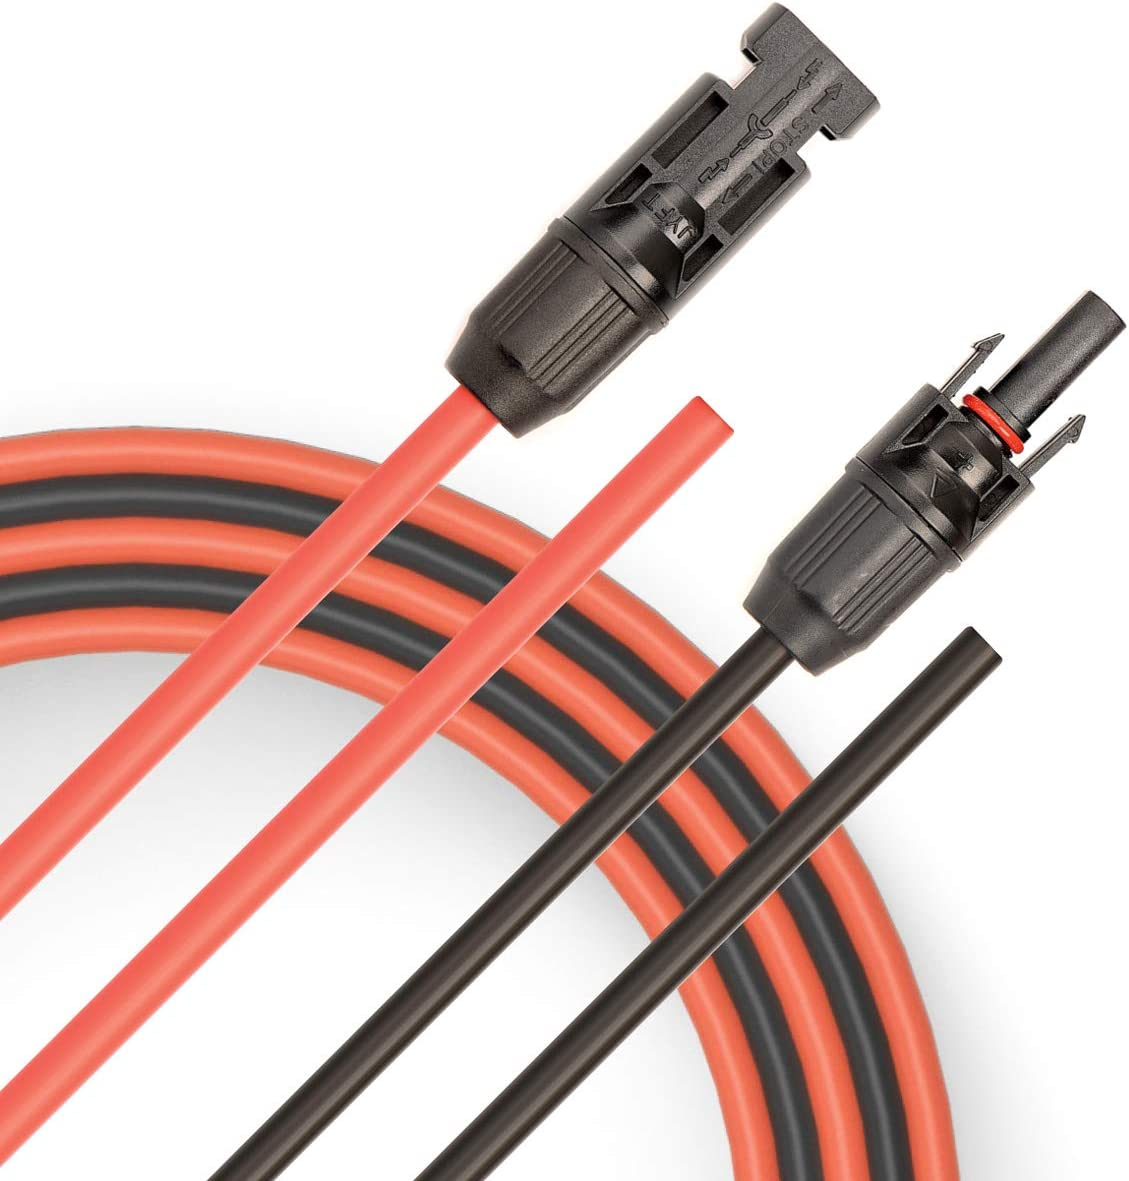 JYFT 10AWG Compatible with MC4 10FT Red + 10FT Black 6mm/² Solar Extension Cable with PV Compatible Female and Male Connector